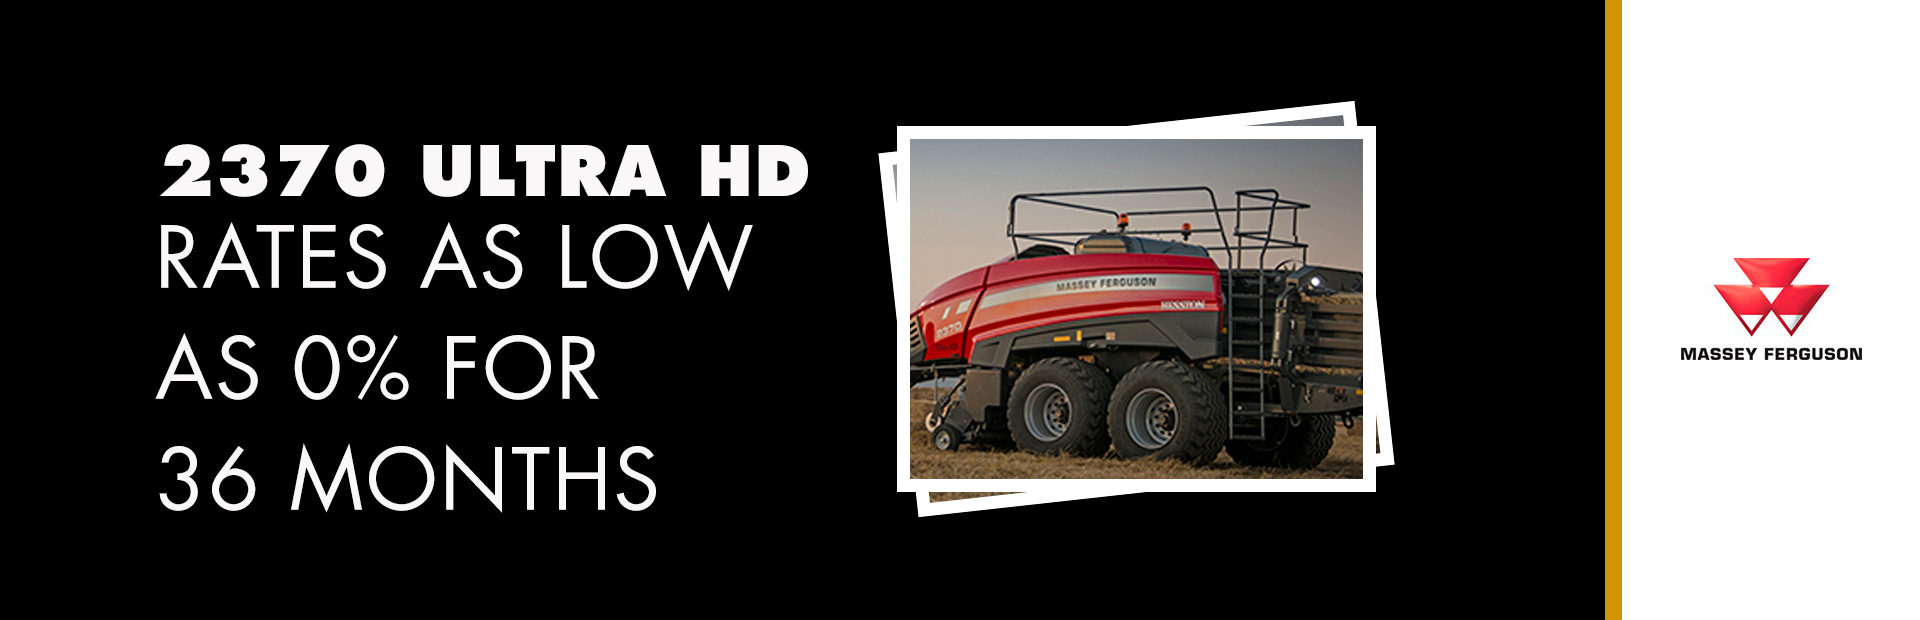 Massey Ferguson: 2370 Ultra HD - Rates as low as 0% for 36 Months